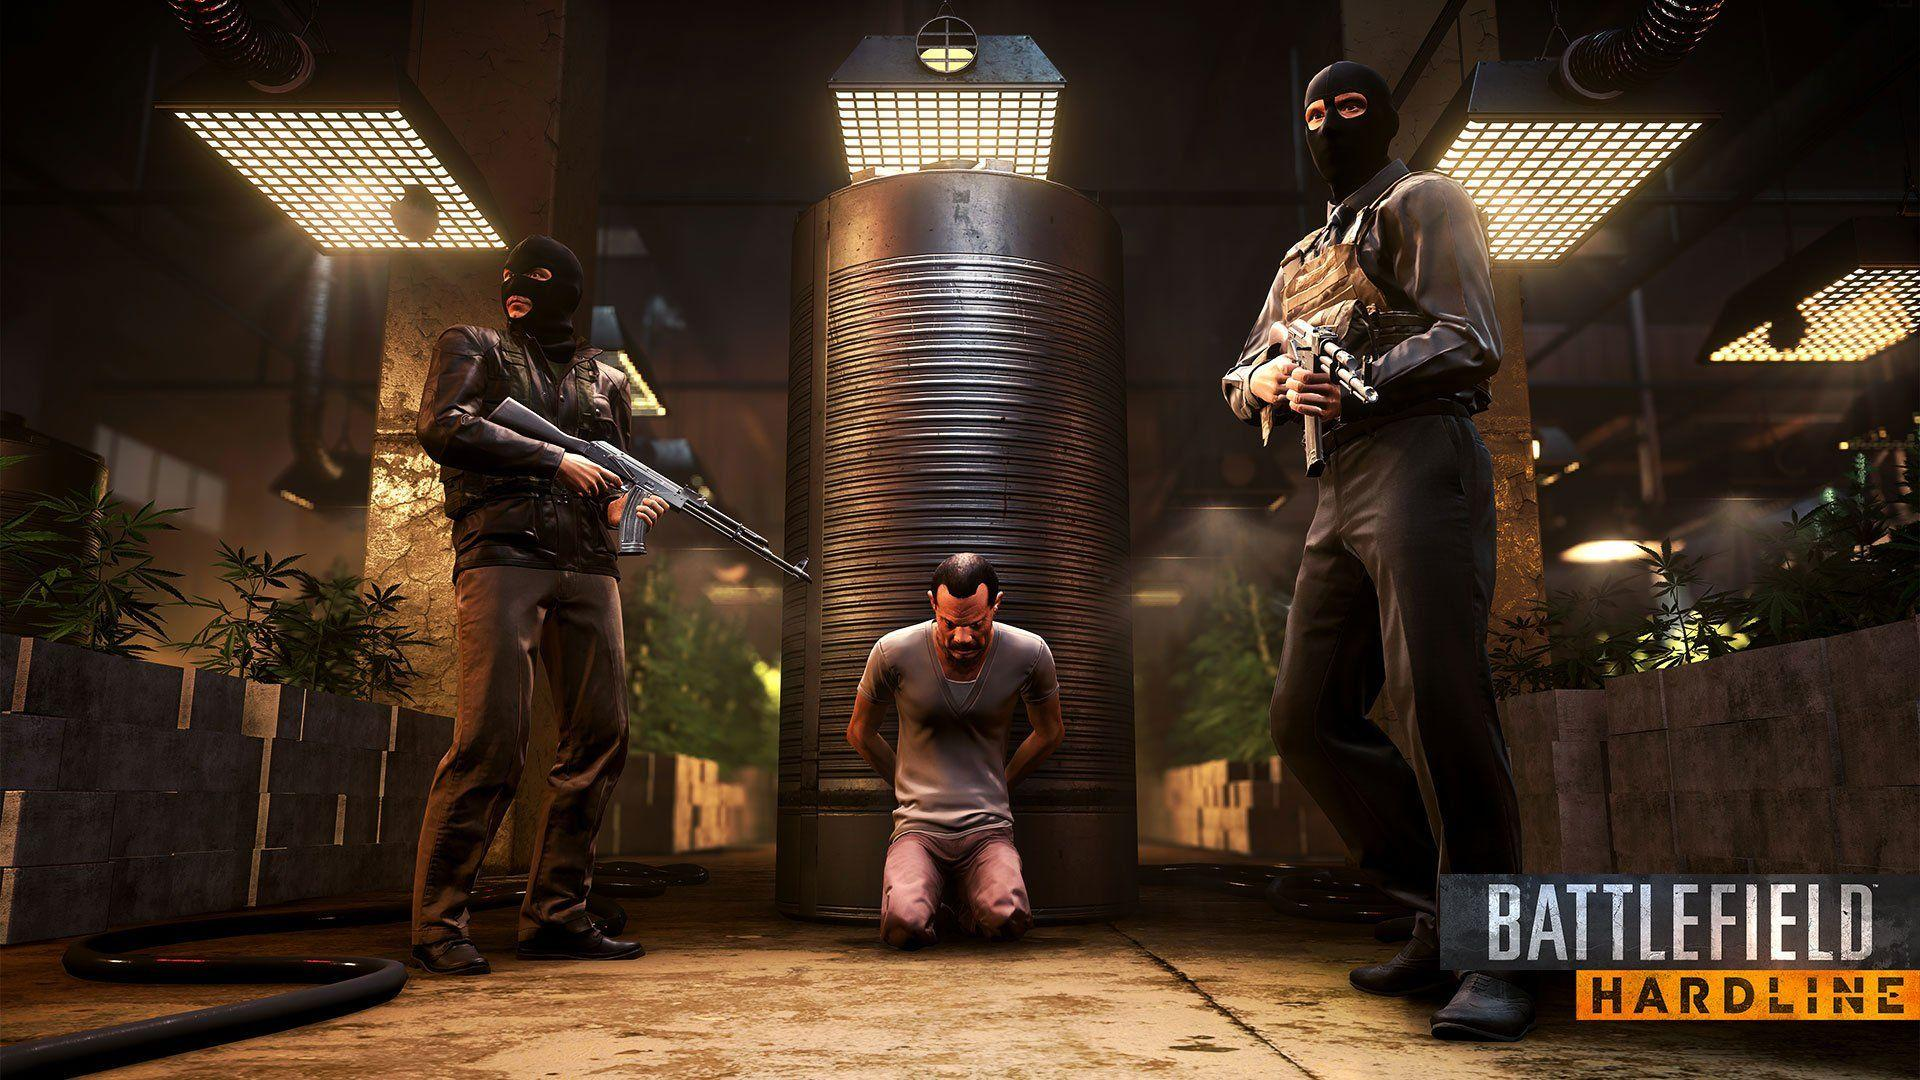 37 Battlefield Hardline HD Wallpapers